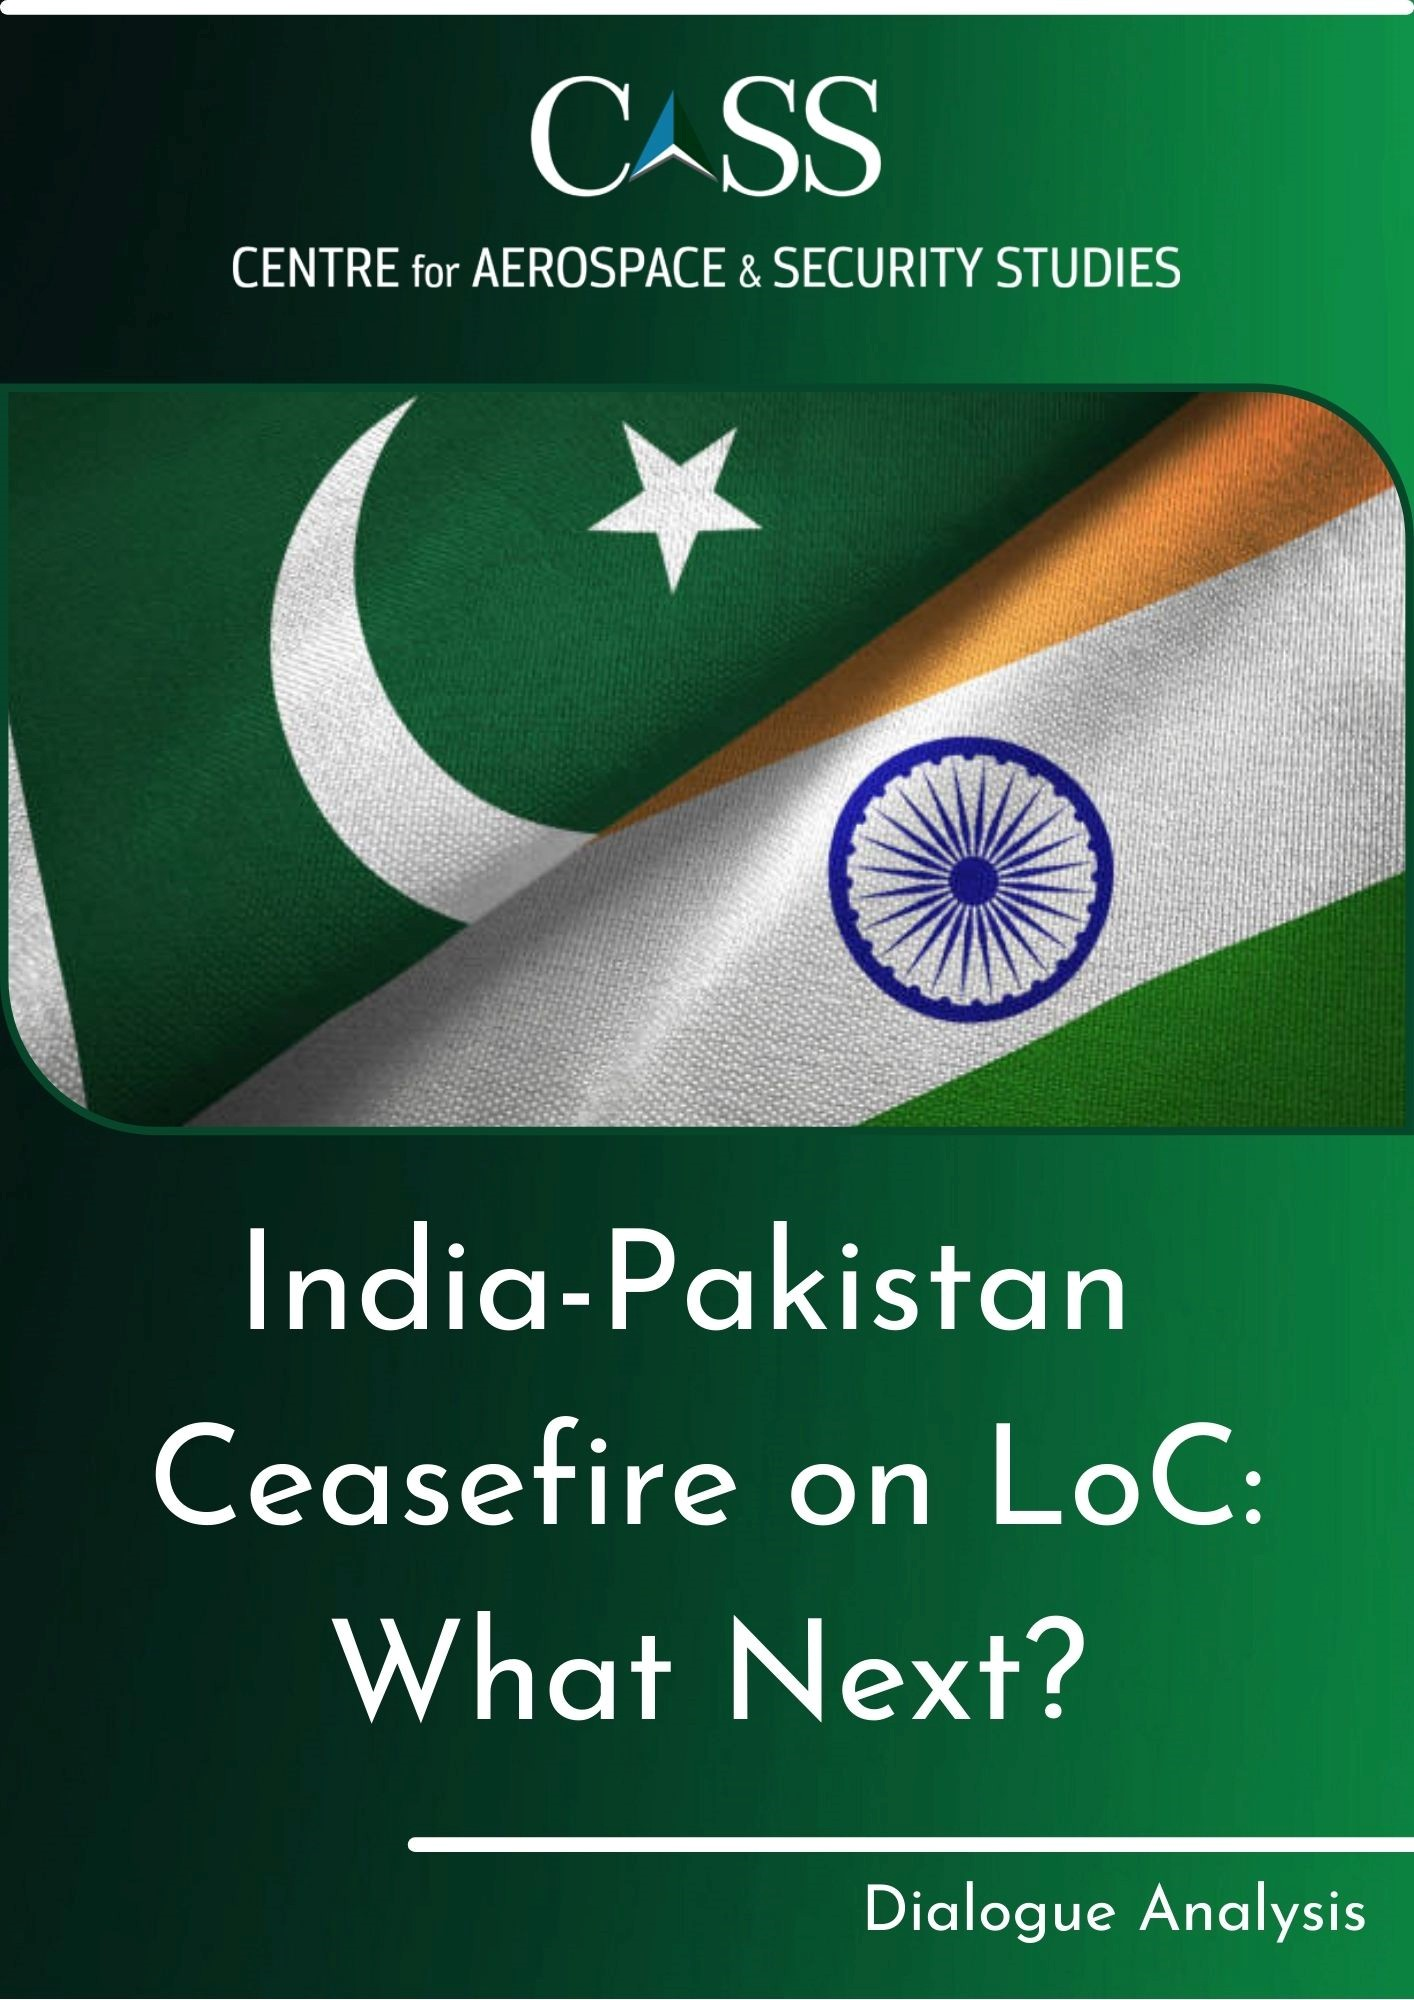 India - Pakistan Ceasefire on LoC: What Next?